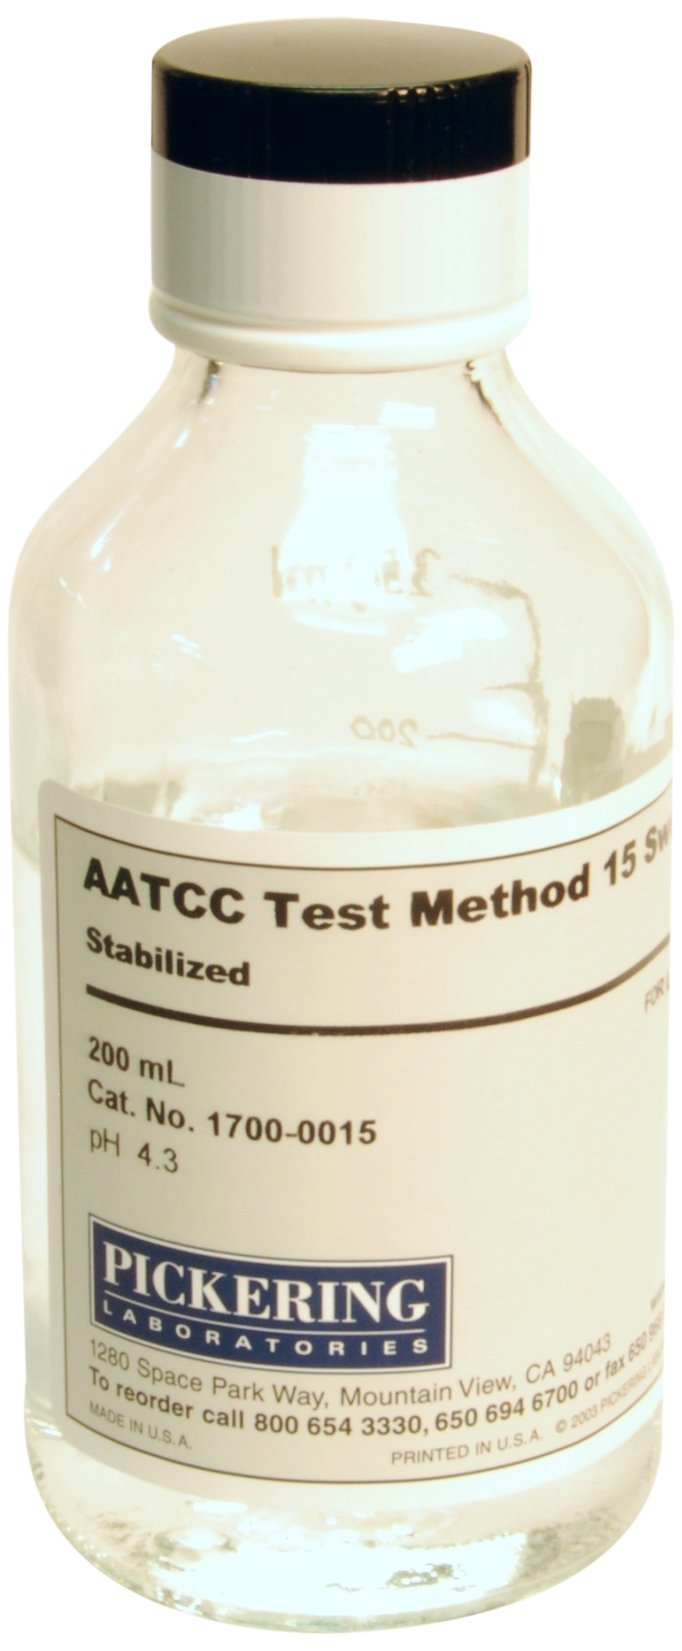 Pickering Laboratories 1700-0015 Artificial Perspiration, AATCC Test Method 15: Sweat, Stabilized, 200 ml, Liquid Formulation in Glass, 6'' Length, 2.5'' Height, 2.5'' Width